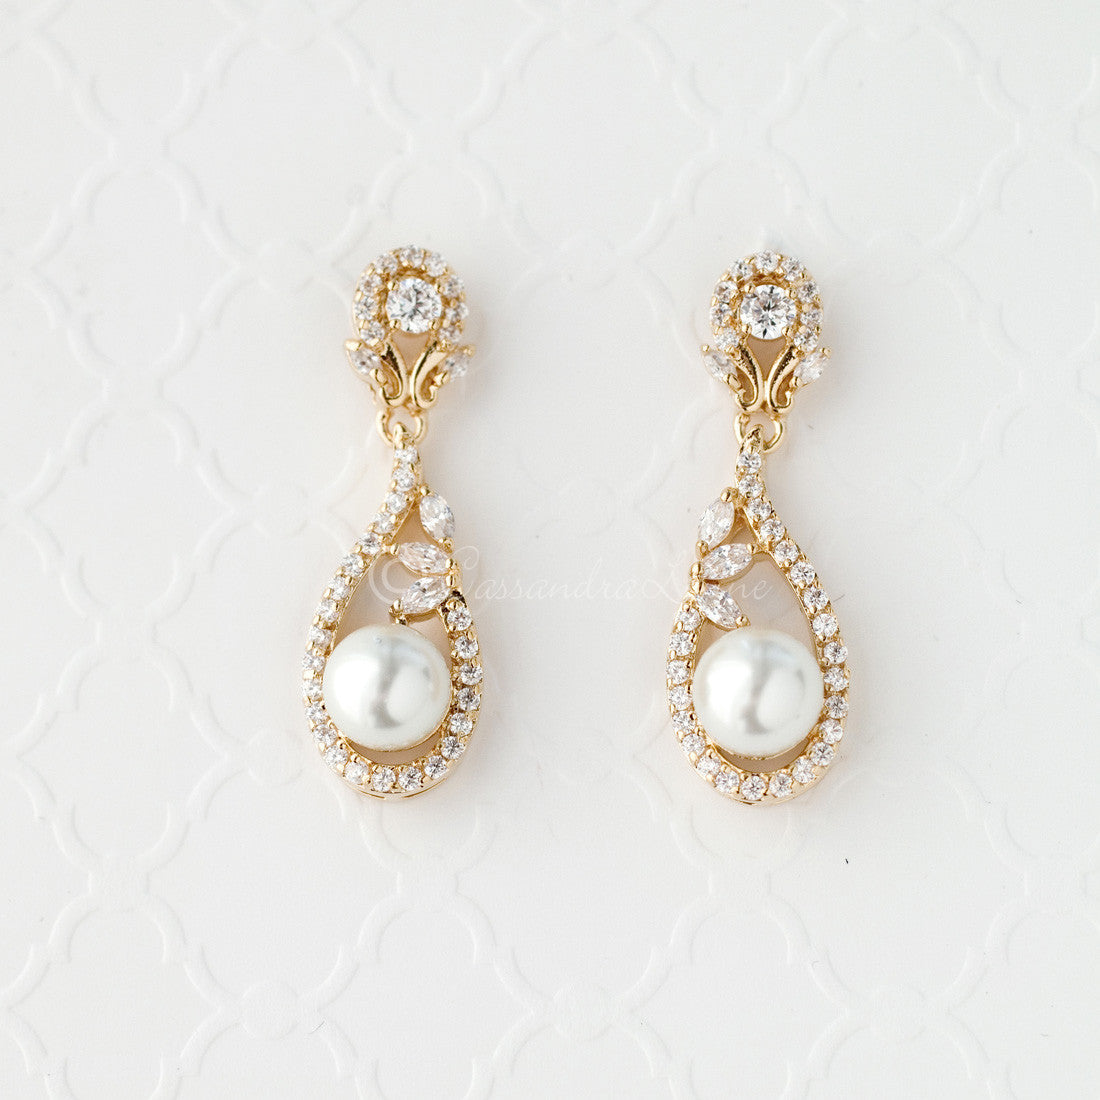 Delicate CZ Drop Earrings with Pearls for the Bride gold